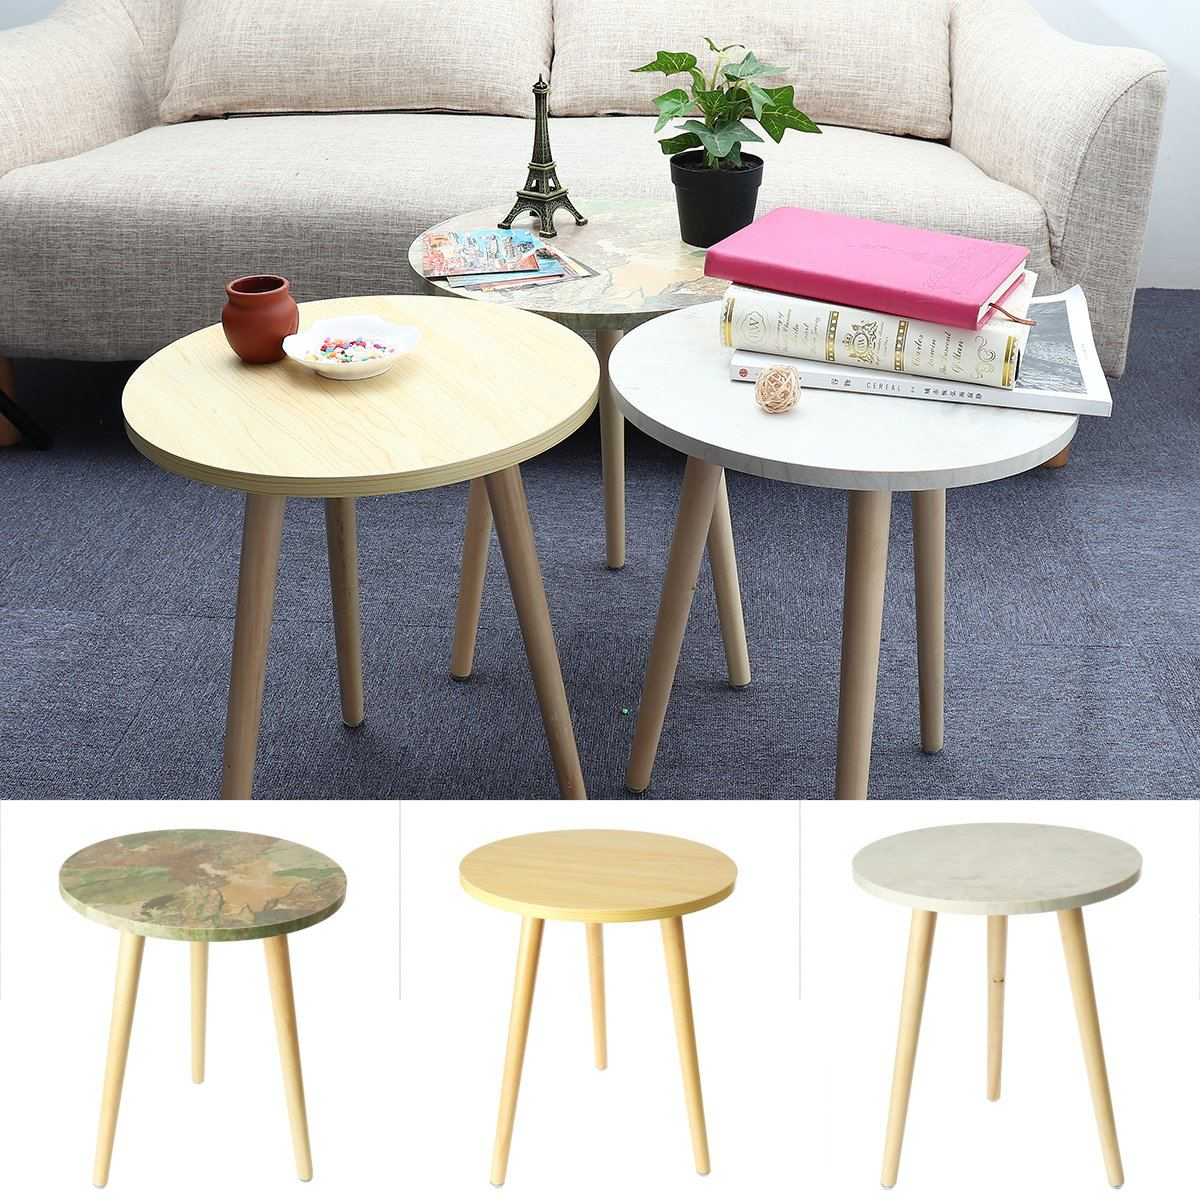 Decoration Sofa Tea-Tables Living-Room Natural Mini Nordic Circular Fashion 3-Colors